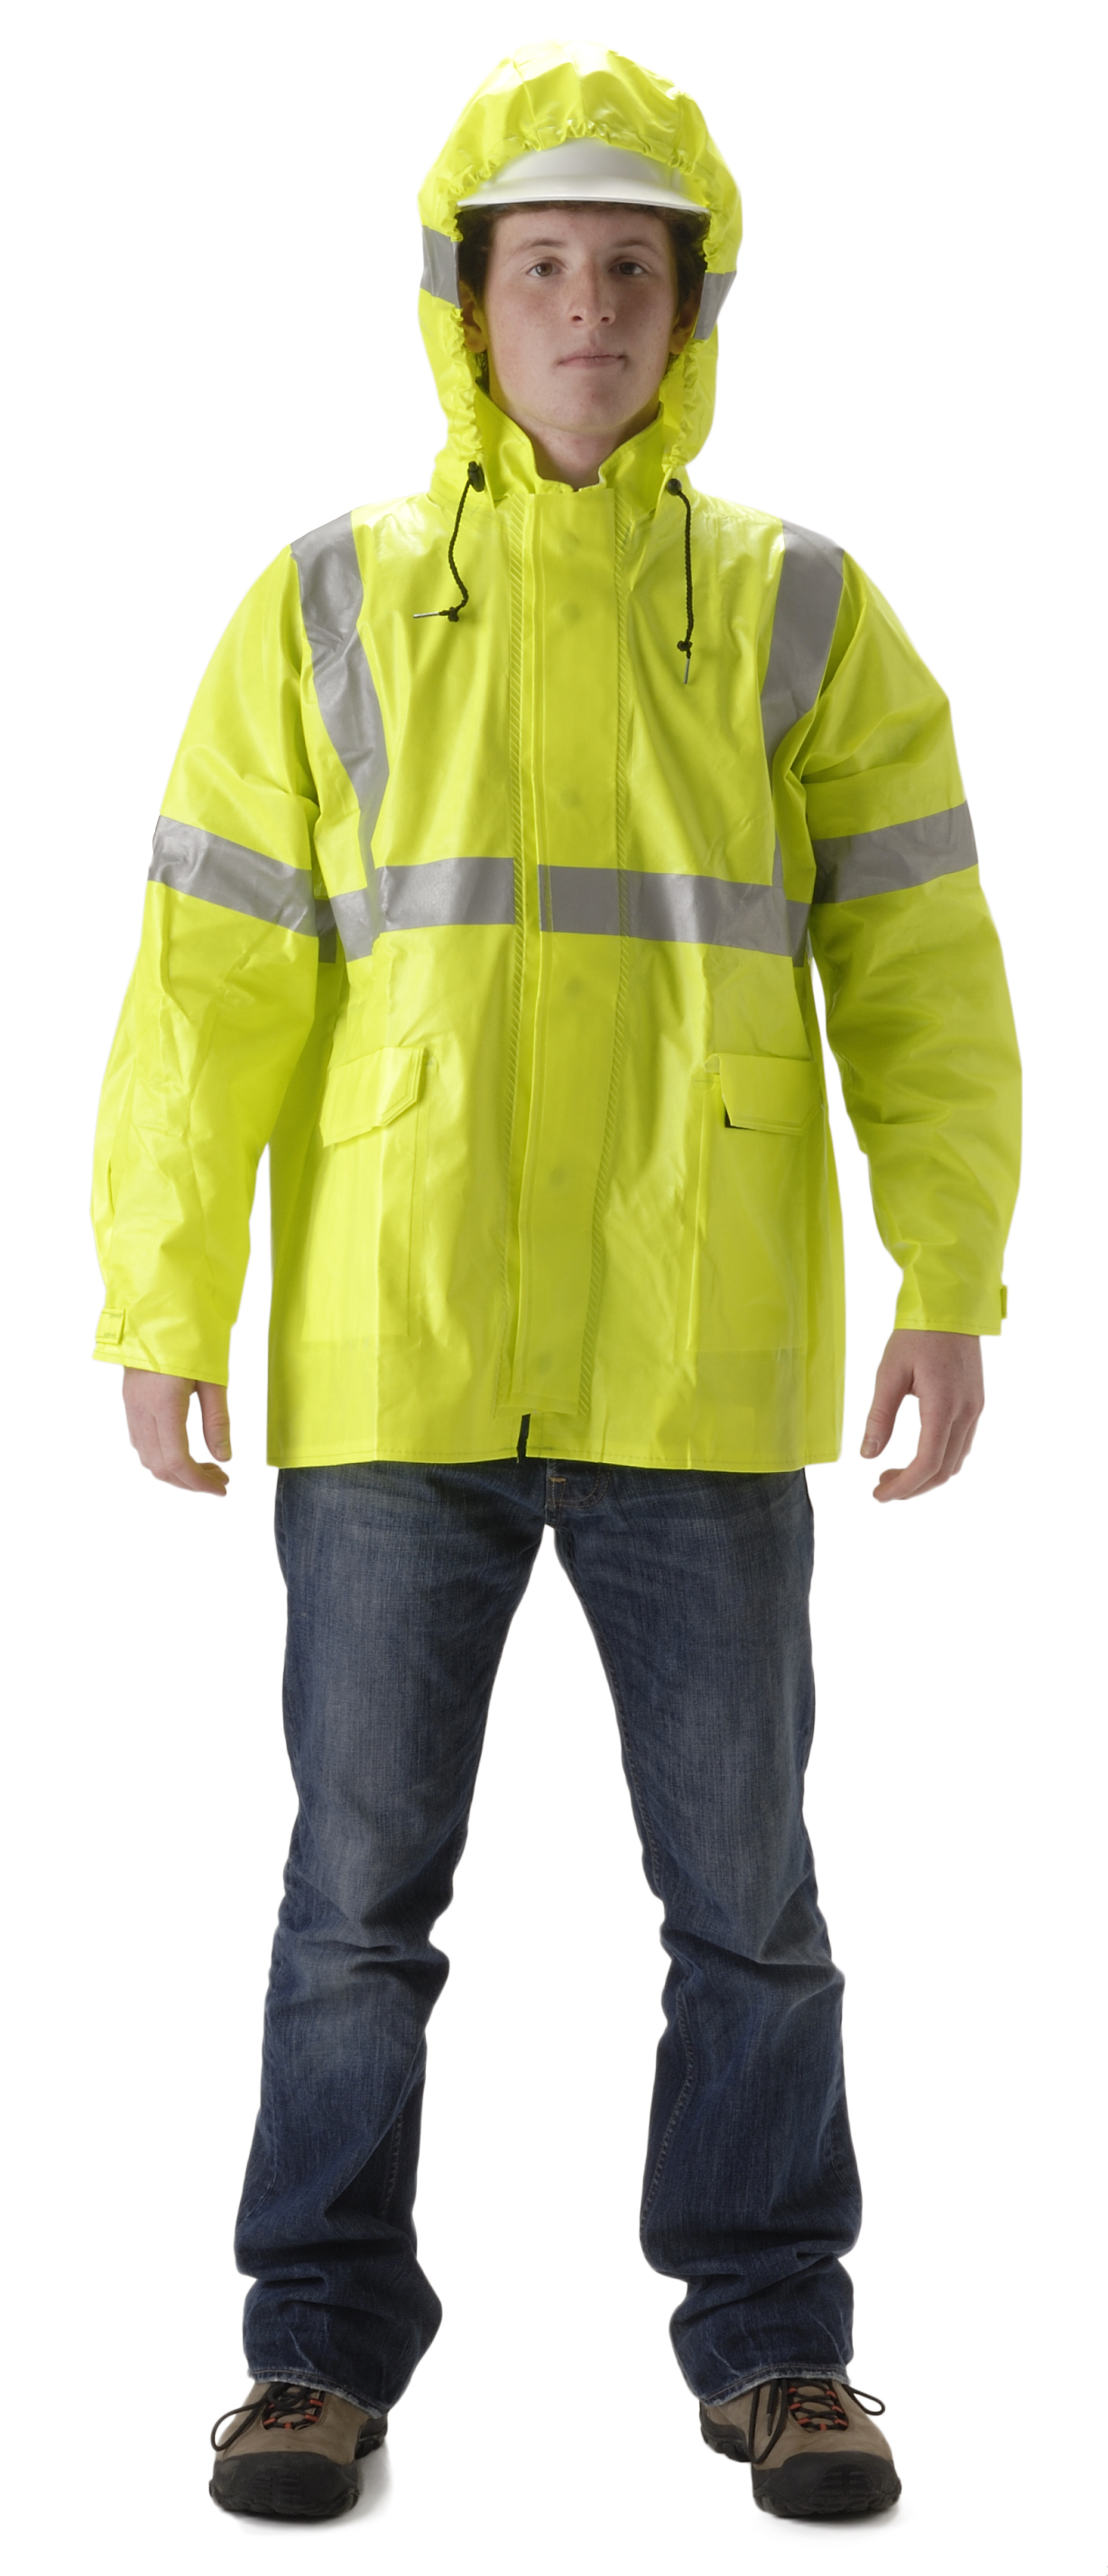 NASCO ARCLite HiVis 1500 Series Raingear Jacket Long